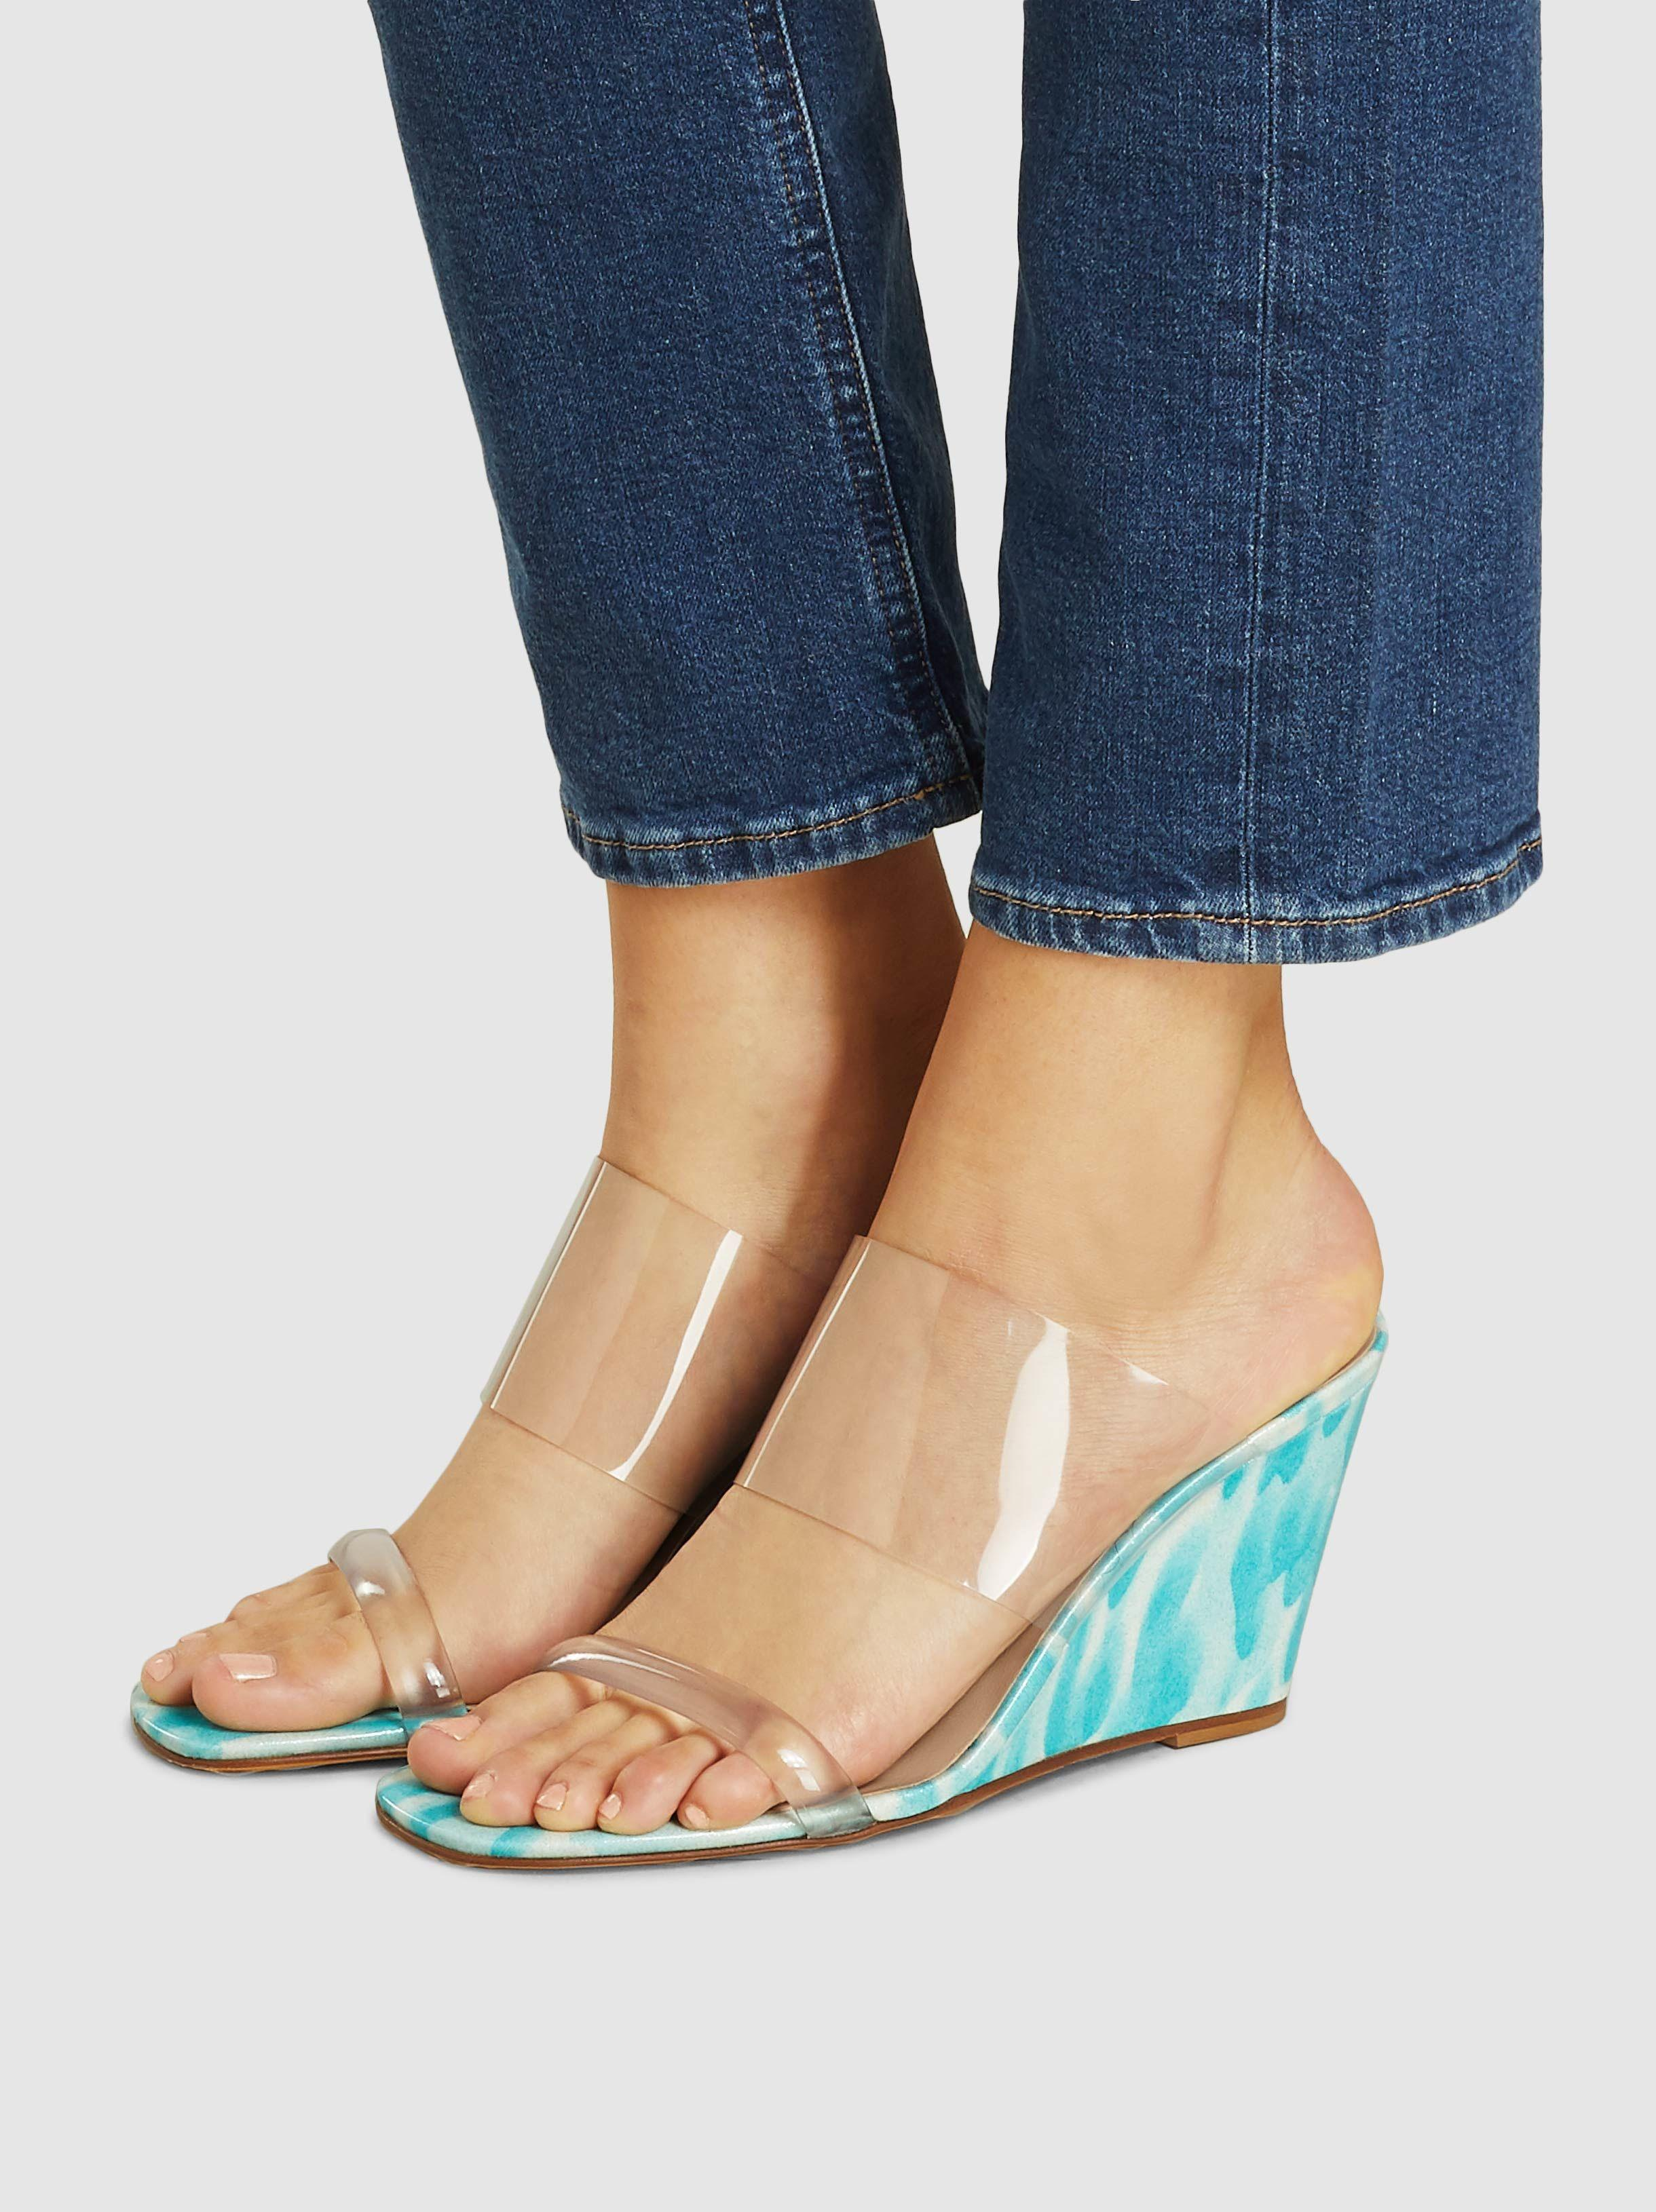 Olympia Wedge Maryam 46Lyst Save Sandals Zadeh In Nassir